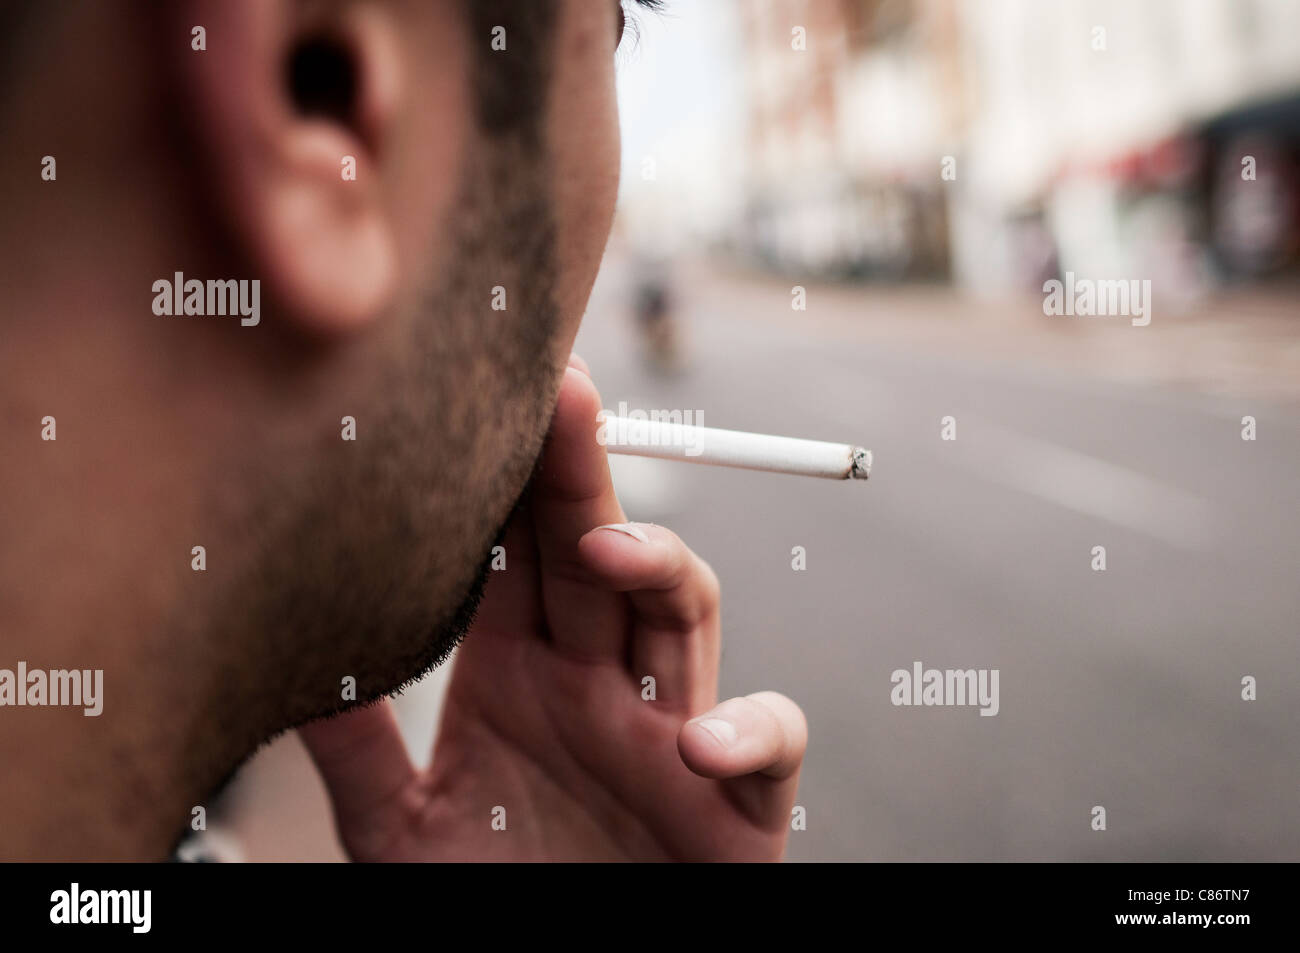 Young man smoking a cigarette - Stock Image